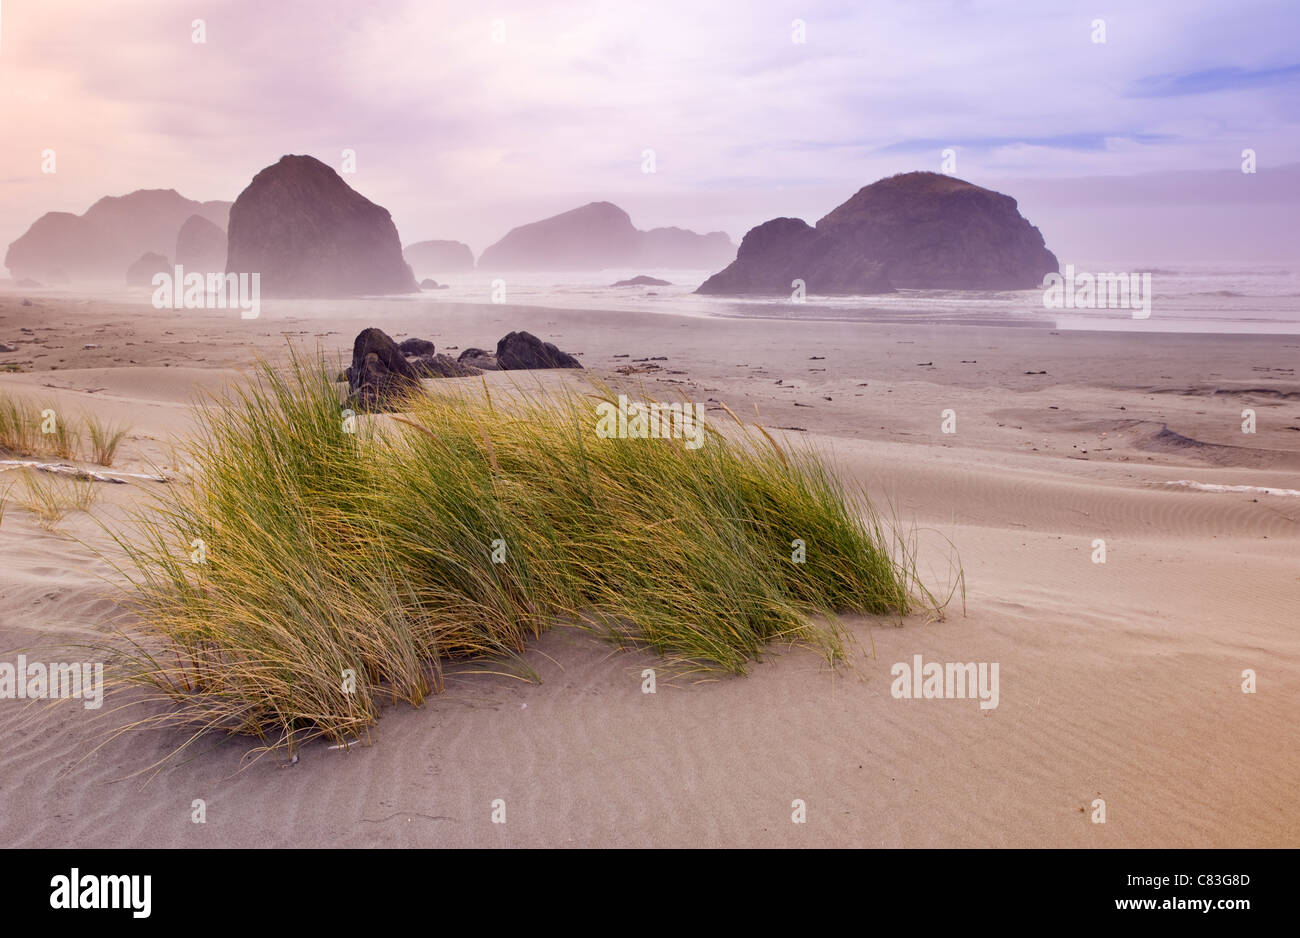 Deserted beach scene in southern Oregon - Stock Image